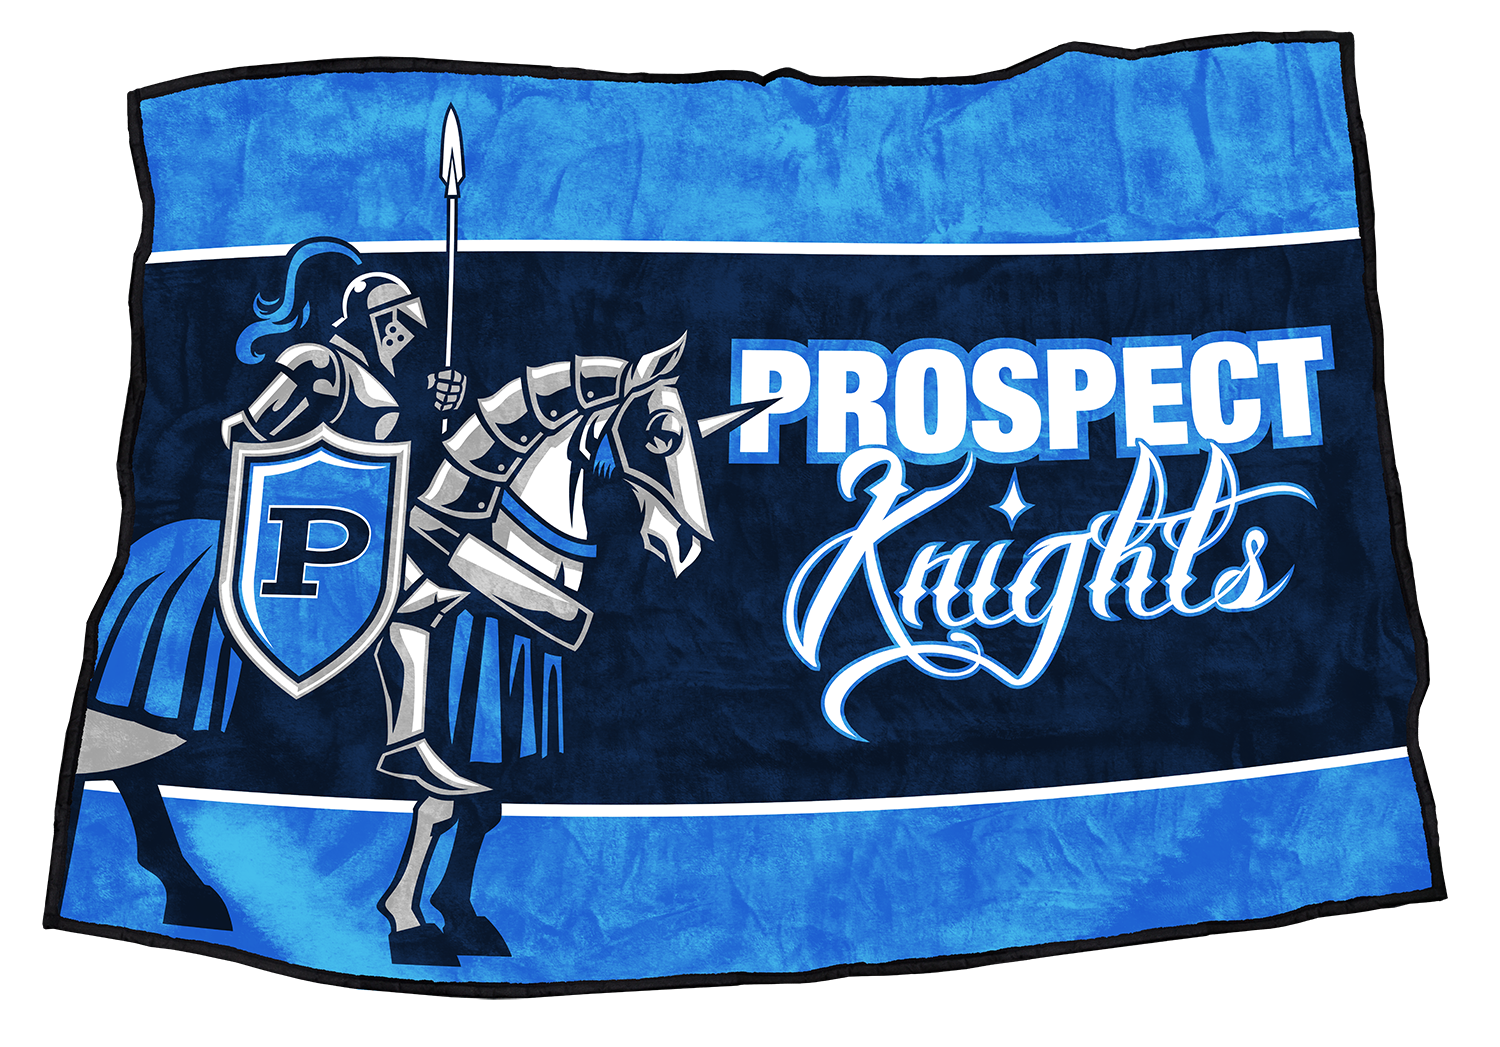 Prospect Knights